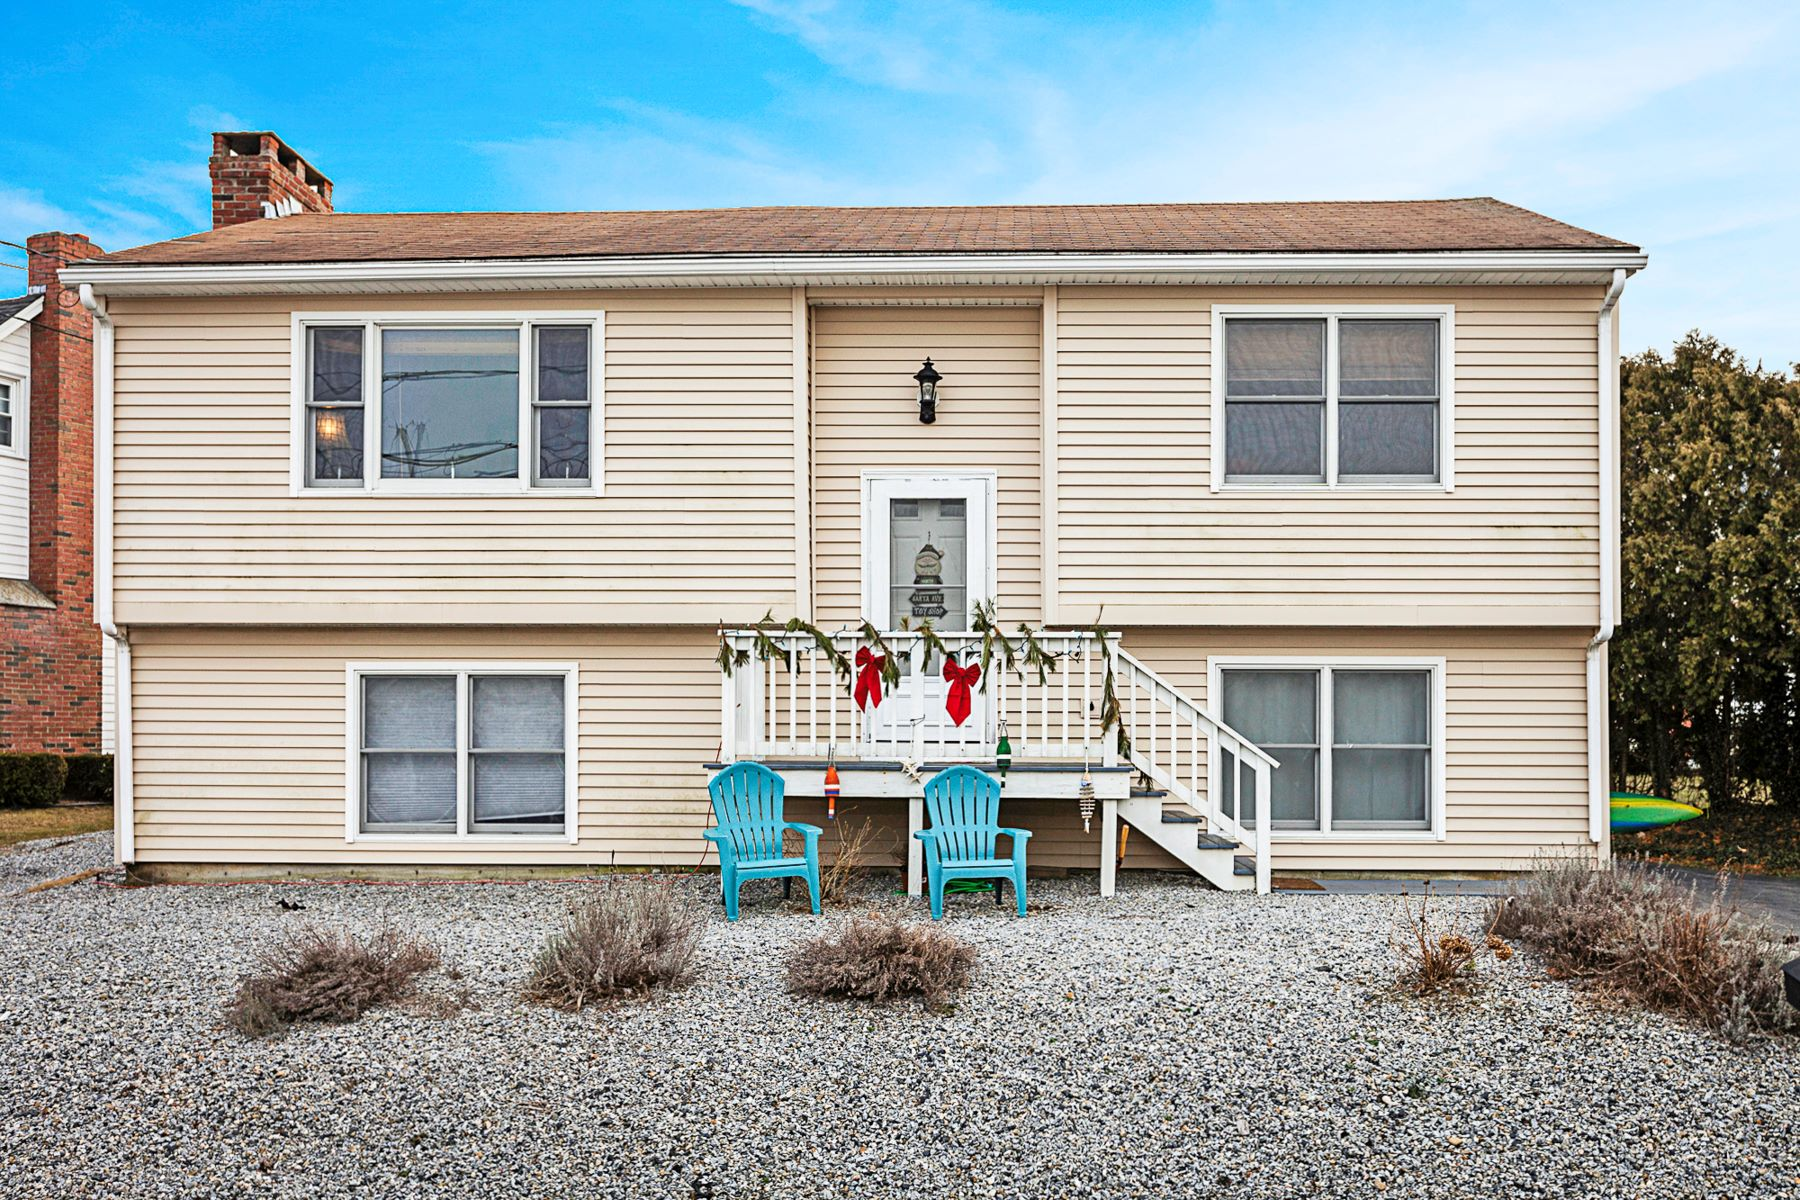 Single Family Homes for Sale at 41 Captains Drive 41 Captains Dr Westbrook, Connecticut 06498 United States